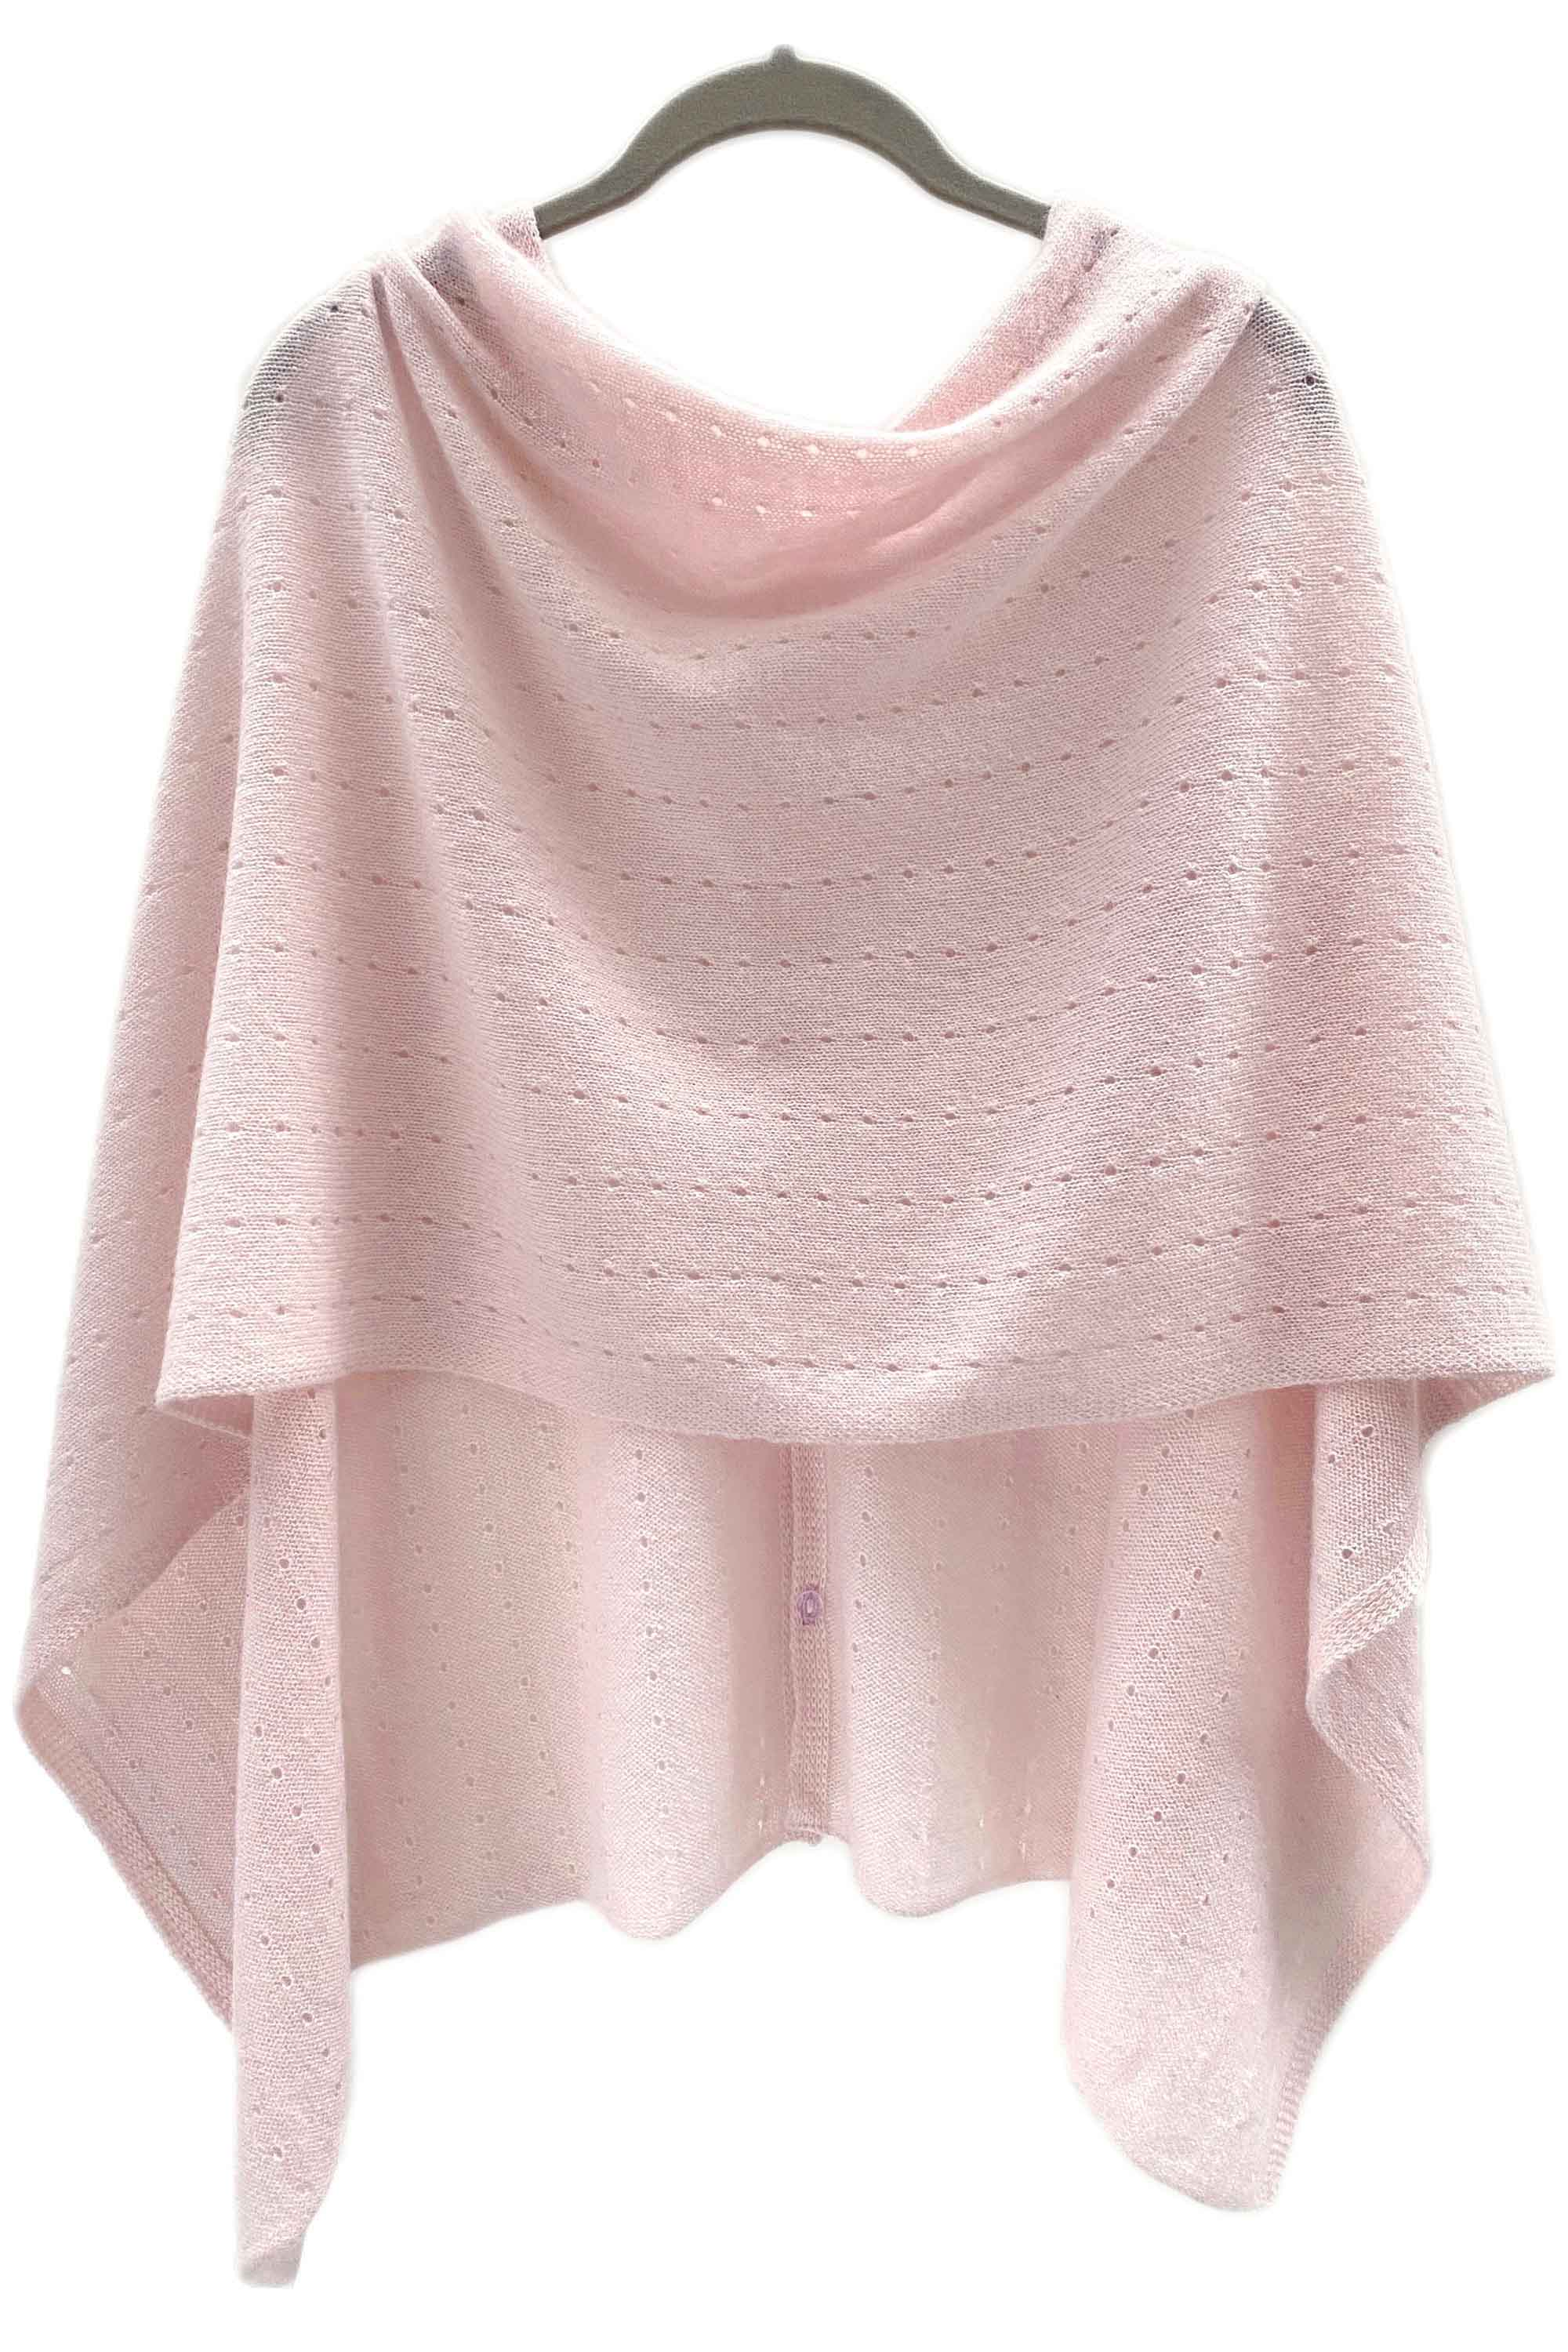 Pale pink Cashmere Poncho UK, Women Wrap, Cape, Shawls, Scarf, shawl, cardigan, light weight, summer poncho, ladies small button poncho sweater sale | SEMON Cashmere